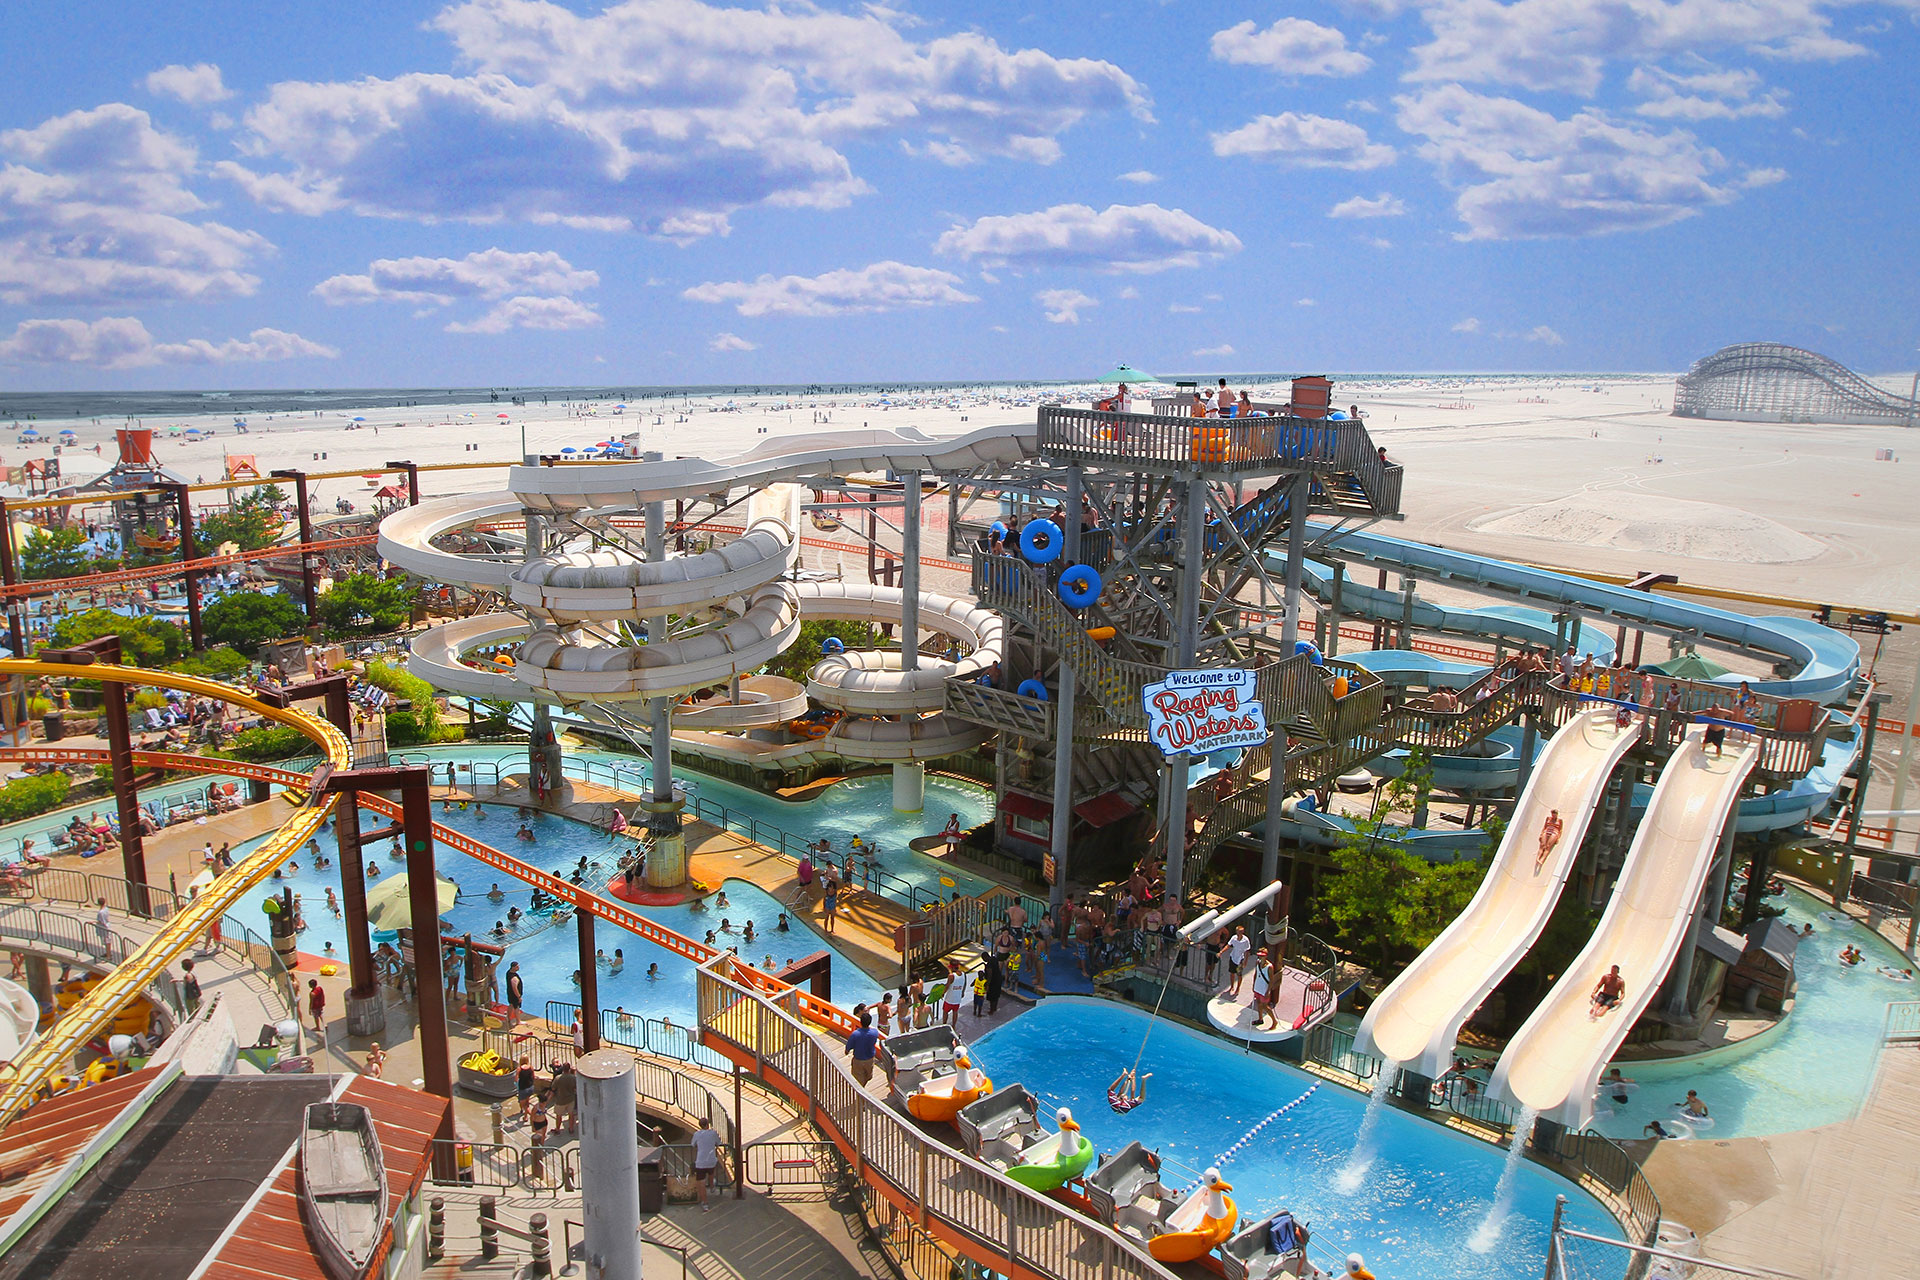 Morey's Piers in Wildwood, New Jersey; Courtesy of Morey's Piers